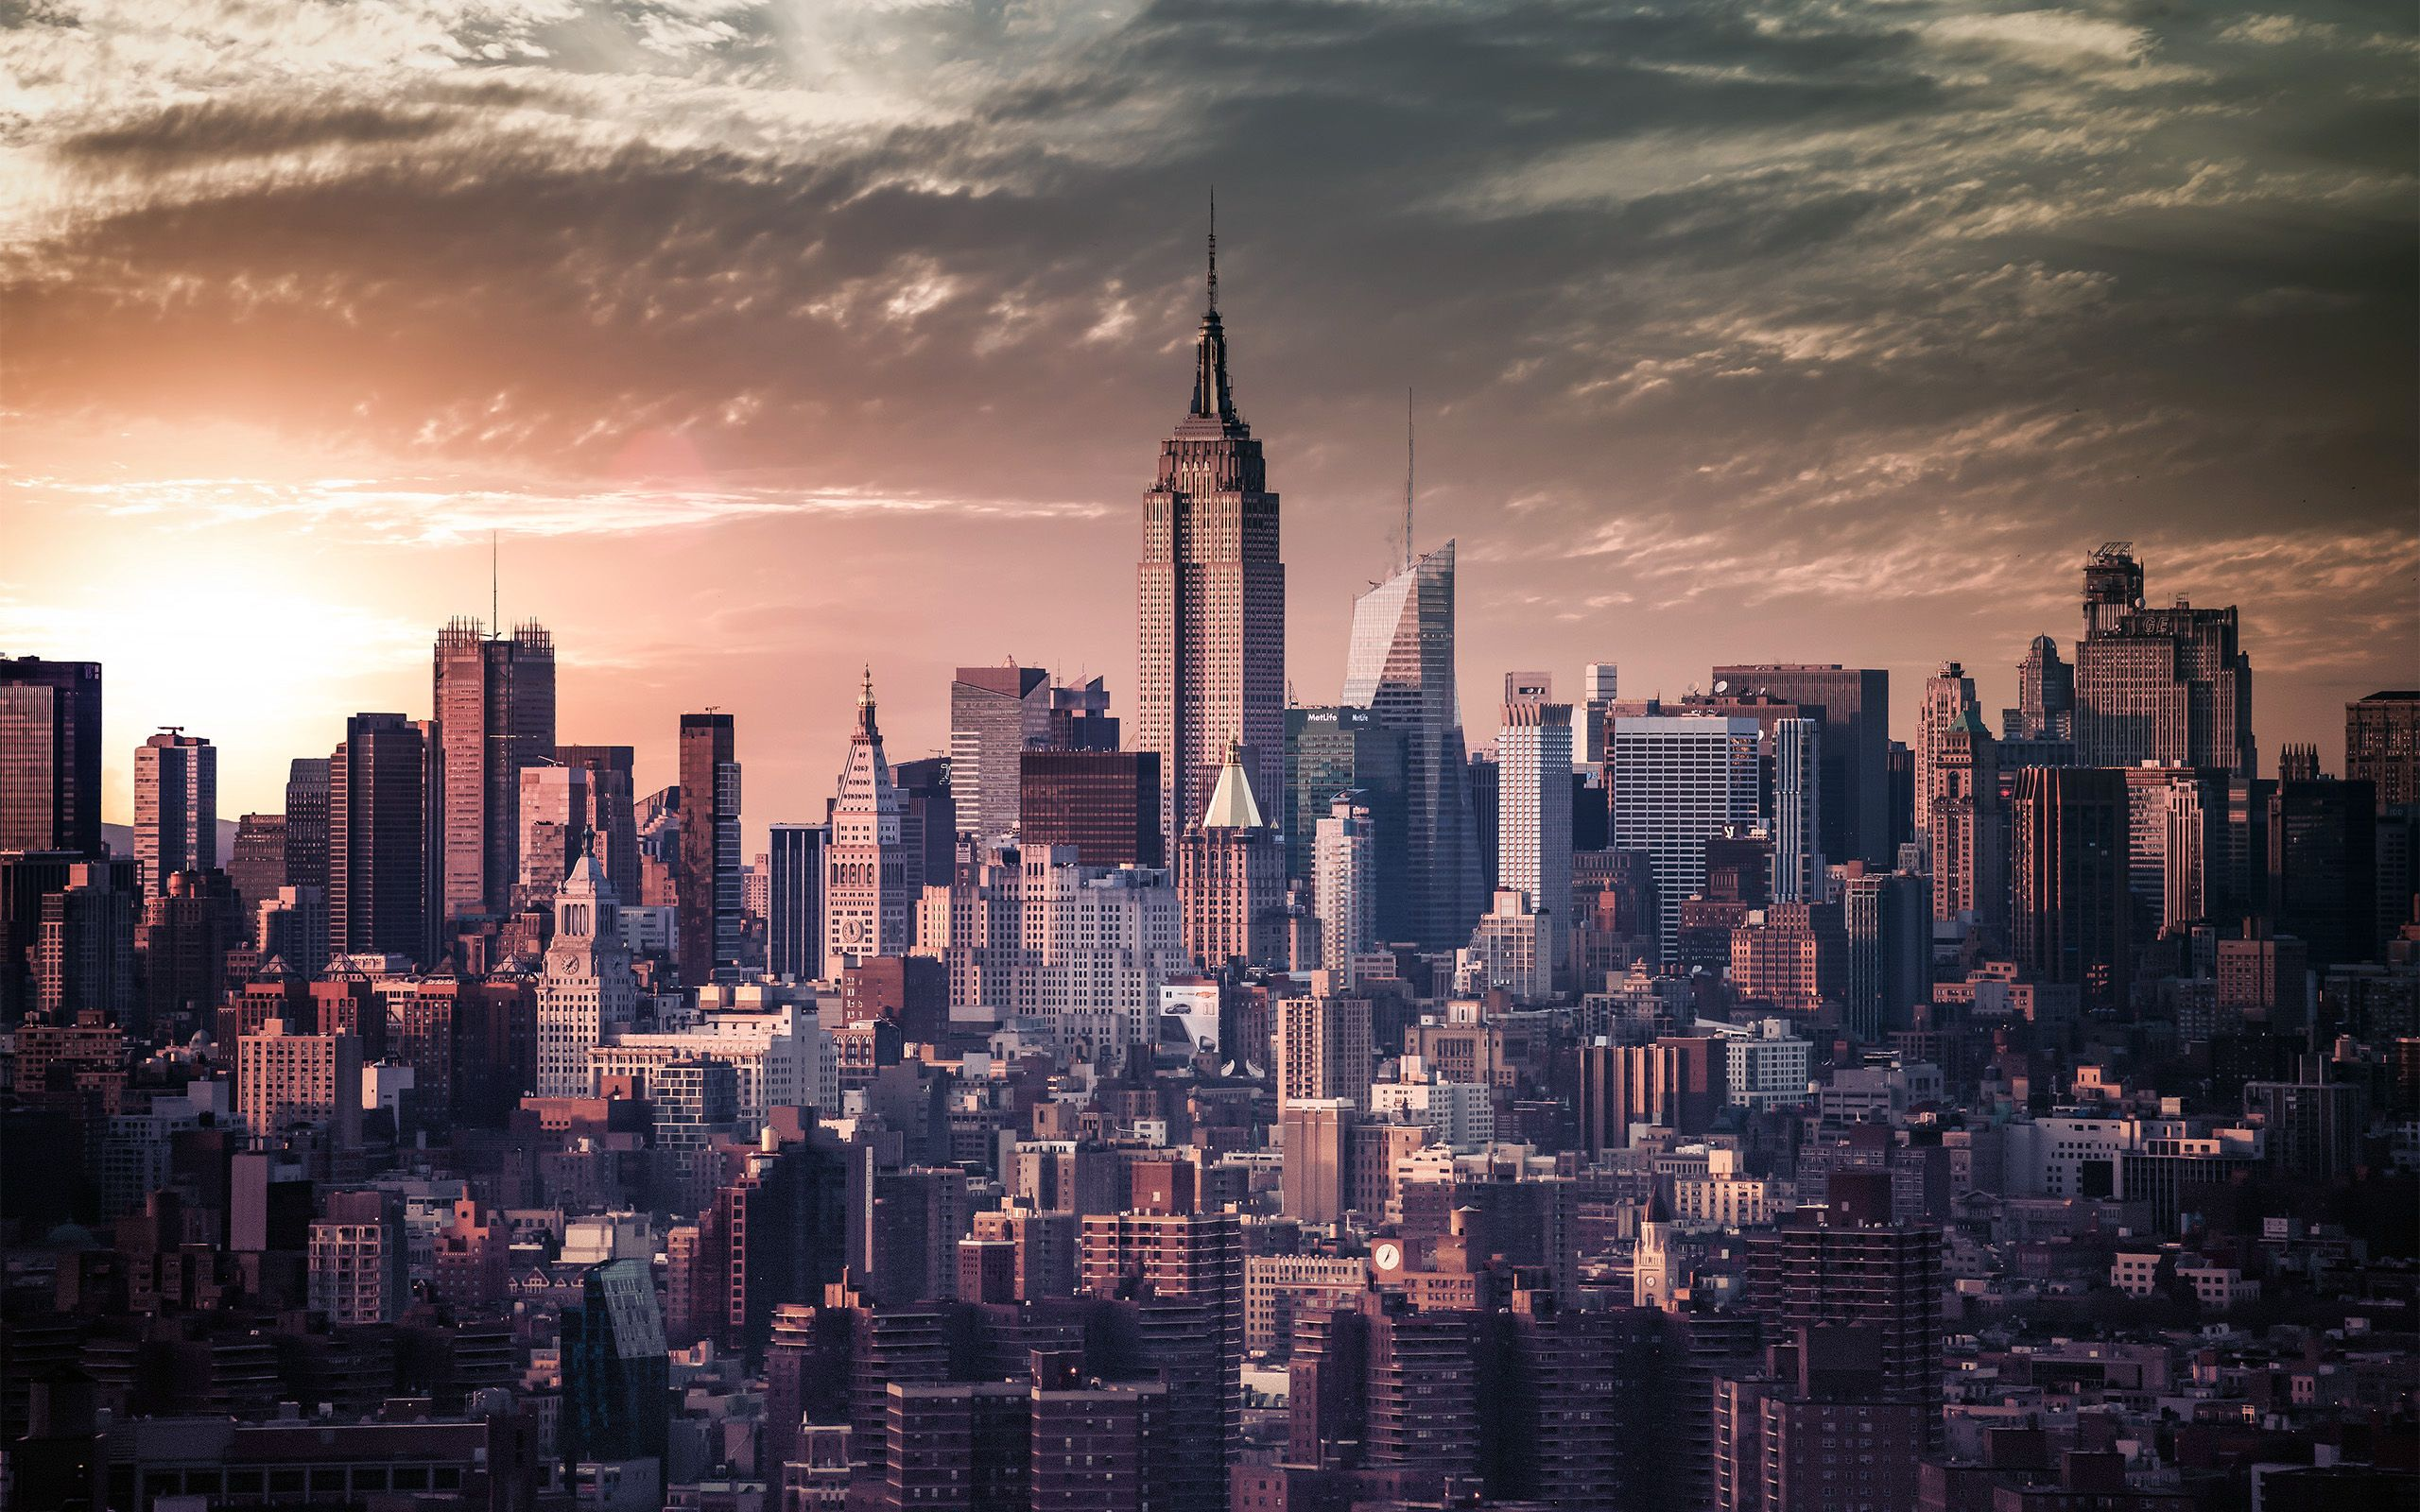 New York City Sunset Picture Gallery Wallpaper Hd Widescreen Free Download New York Wallpaper York New York City